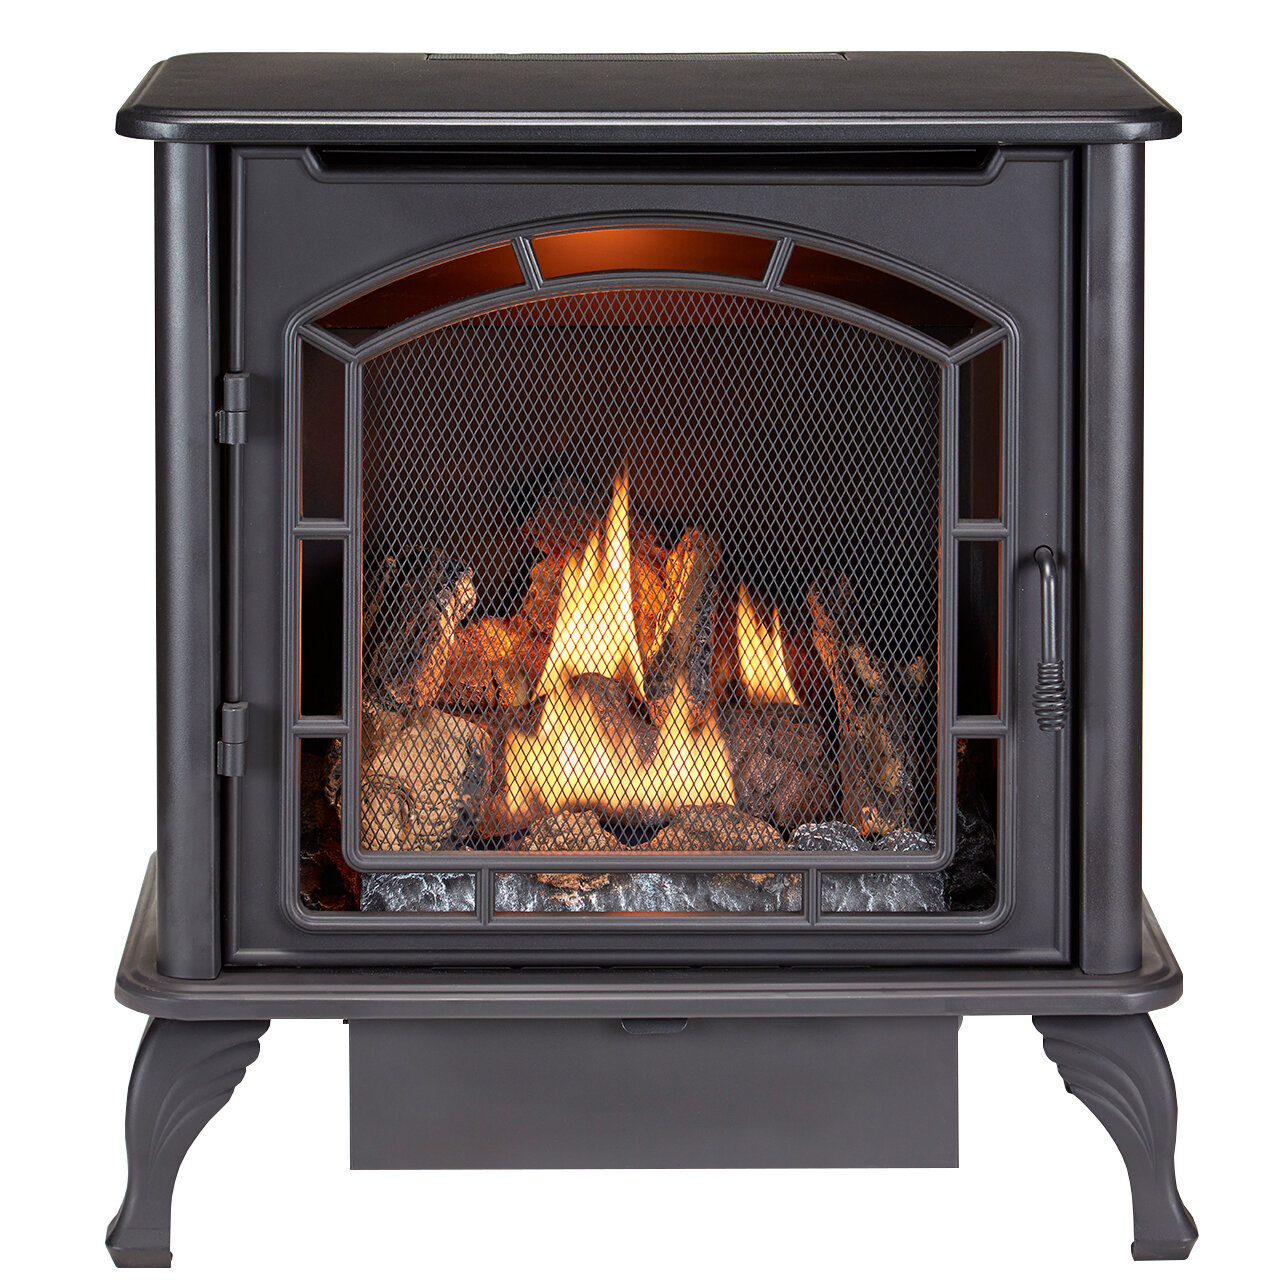 Light Fixtures Duluth Mn: Duluth Forge 1,100 Sq. Ft. Vent Free Gas Stove & Reviews